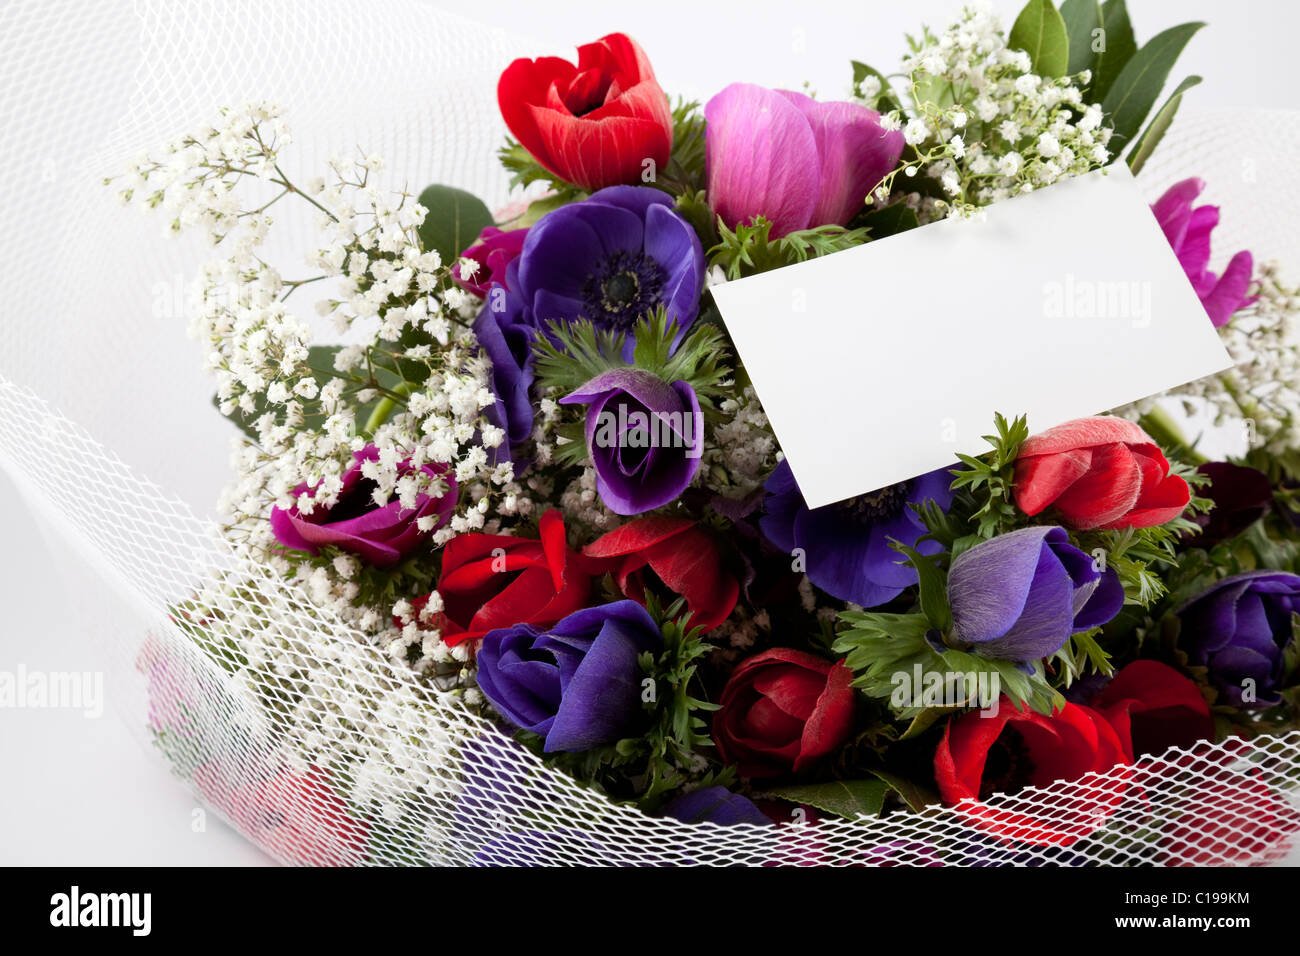 Beautiful bouquet flowers blank white stock photos beautiful beautiful bouquet of flowers with blank white card to put your message stock image izmirmasajfo